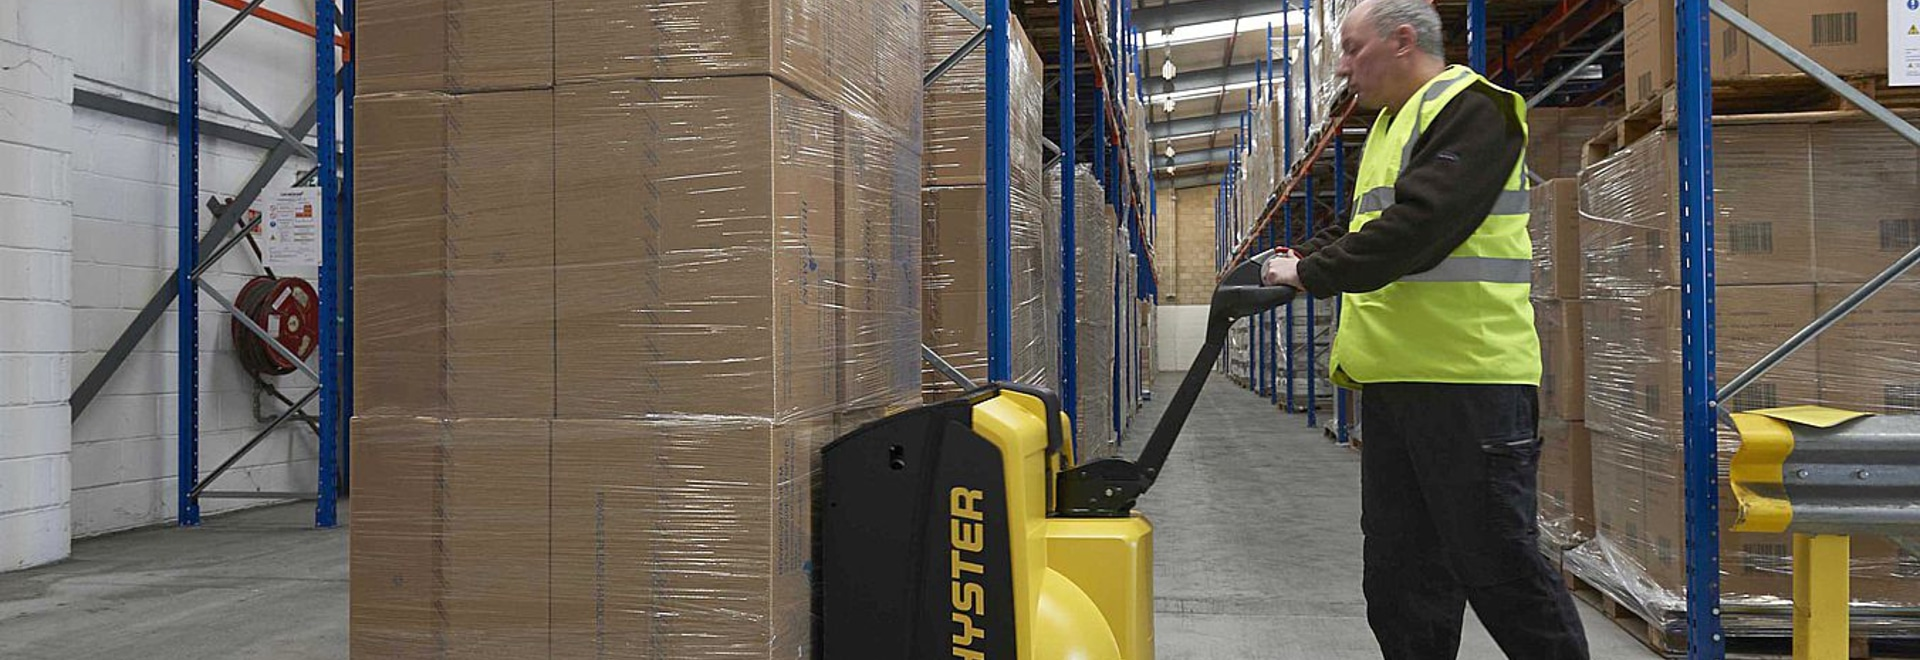 Tough New Pallet Truck from Hyster